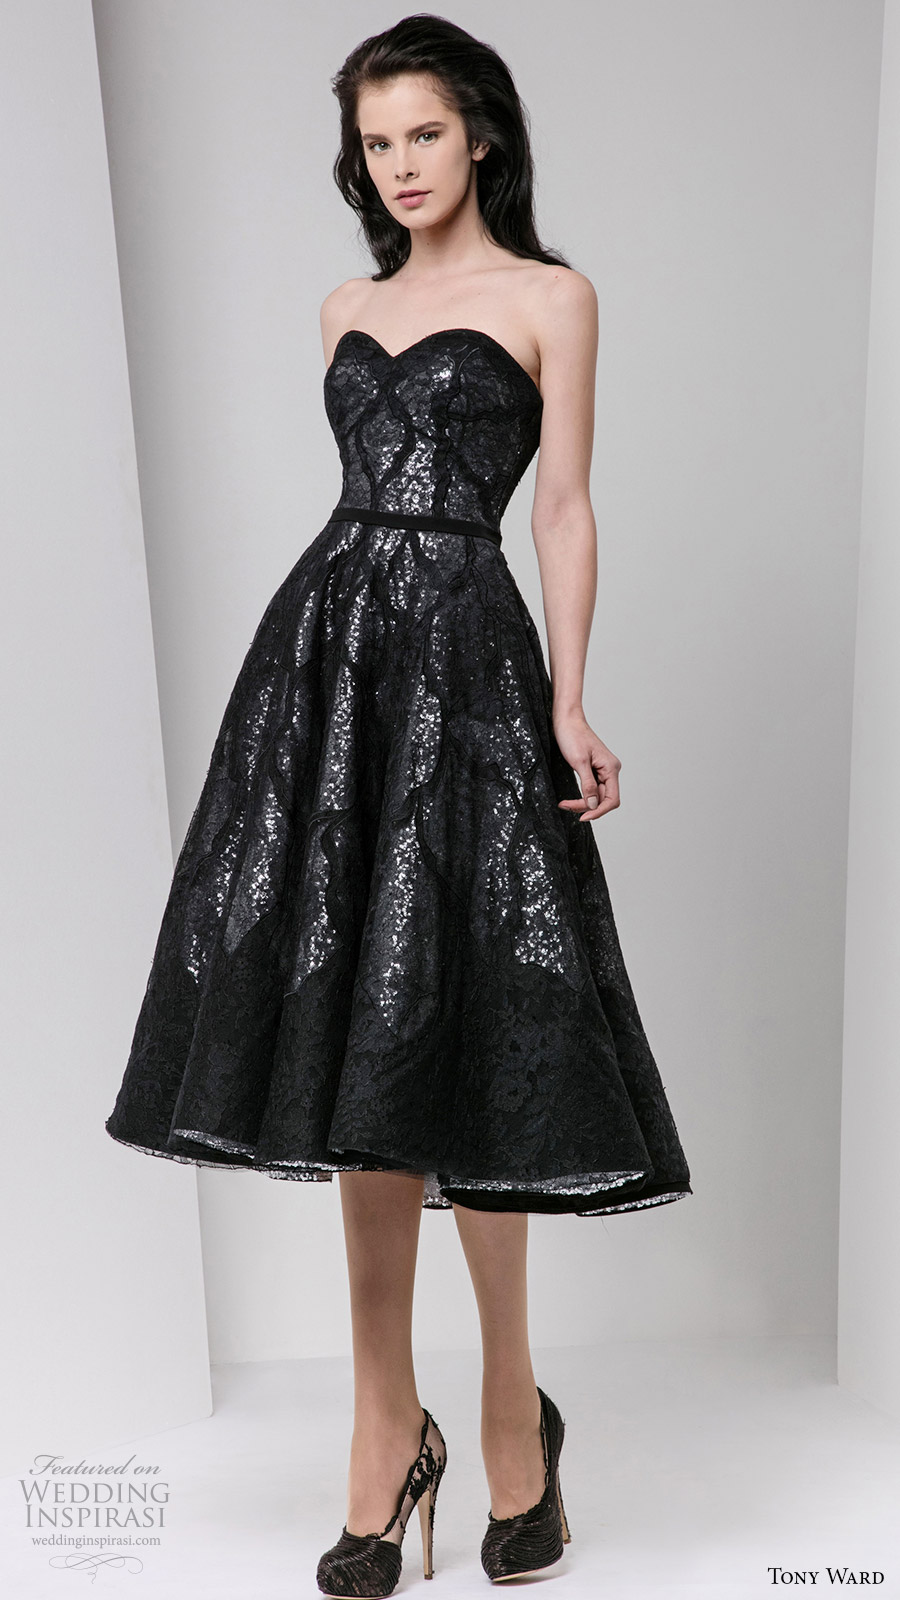 tony ward fall 2016 rtw strapless sweetheart a line short dress sequin black